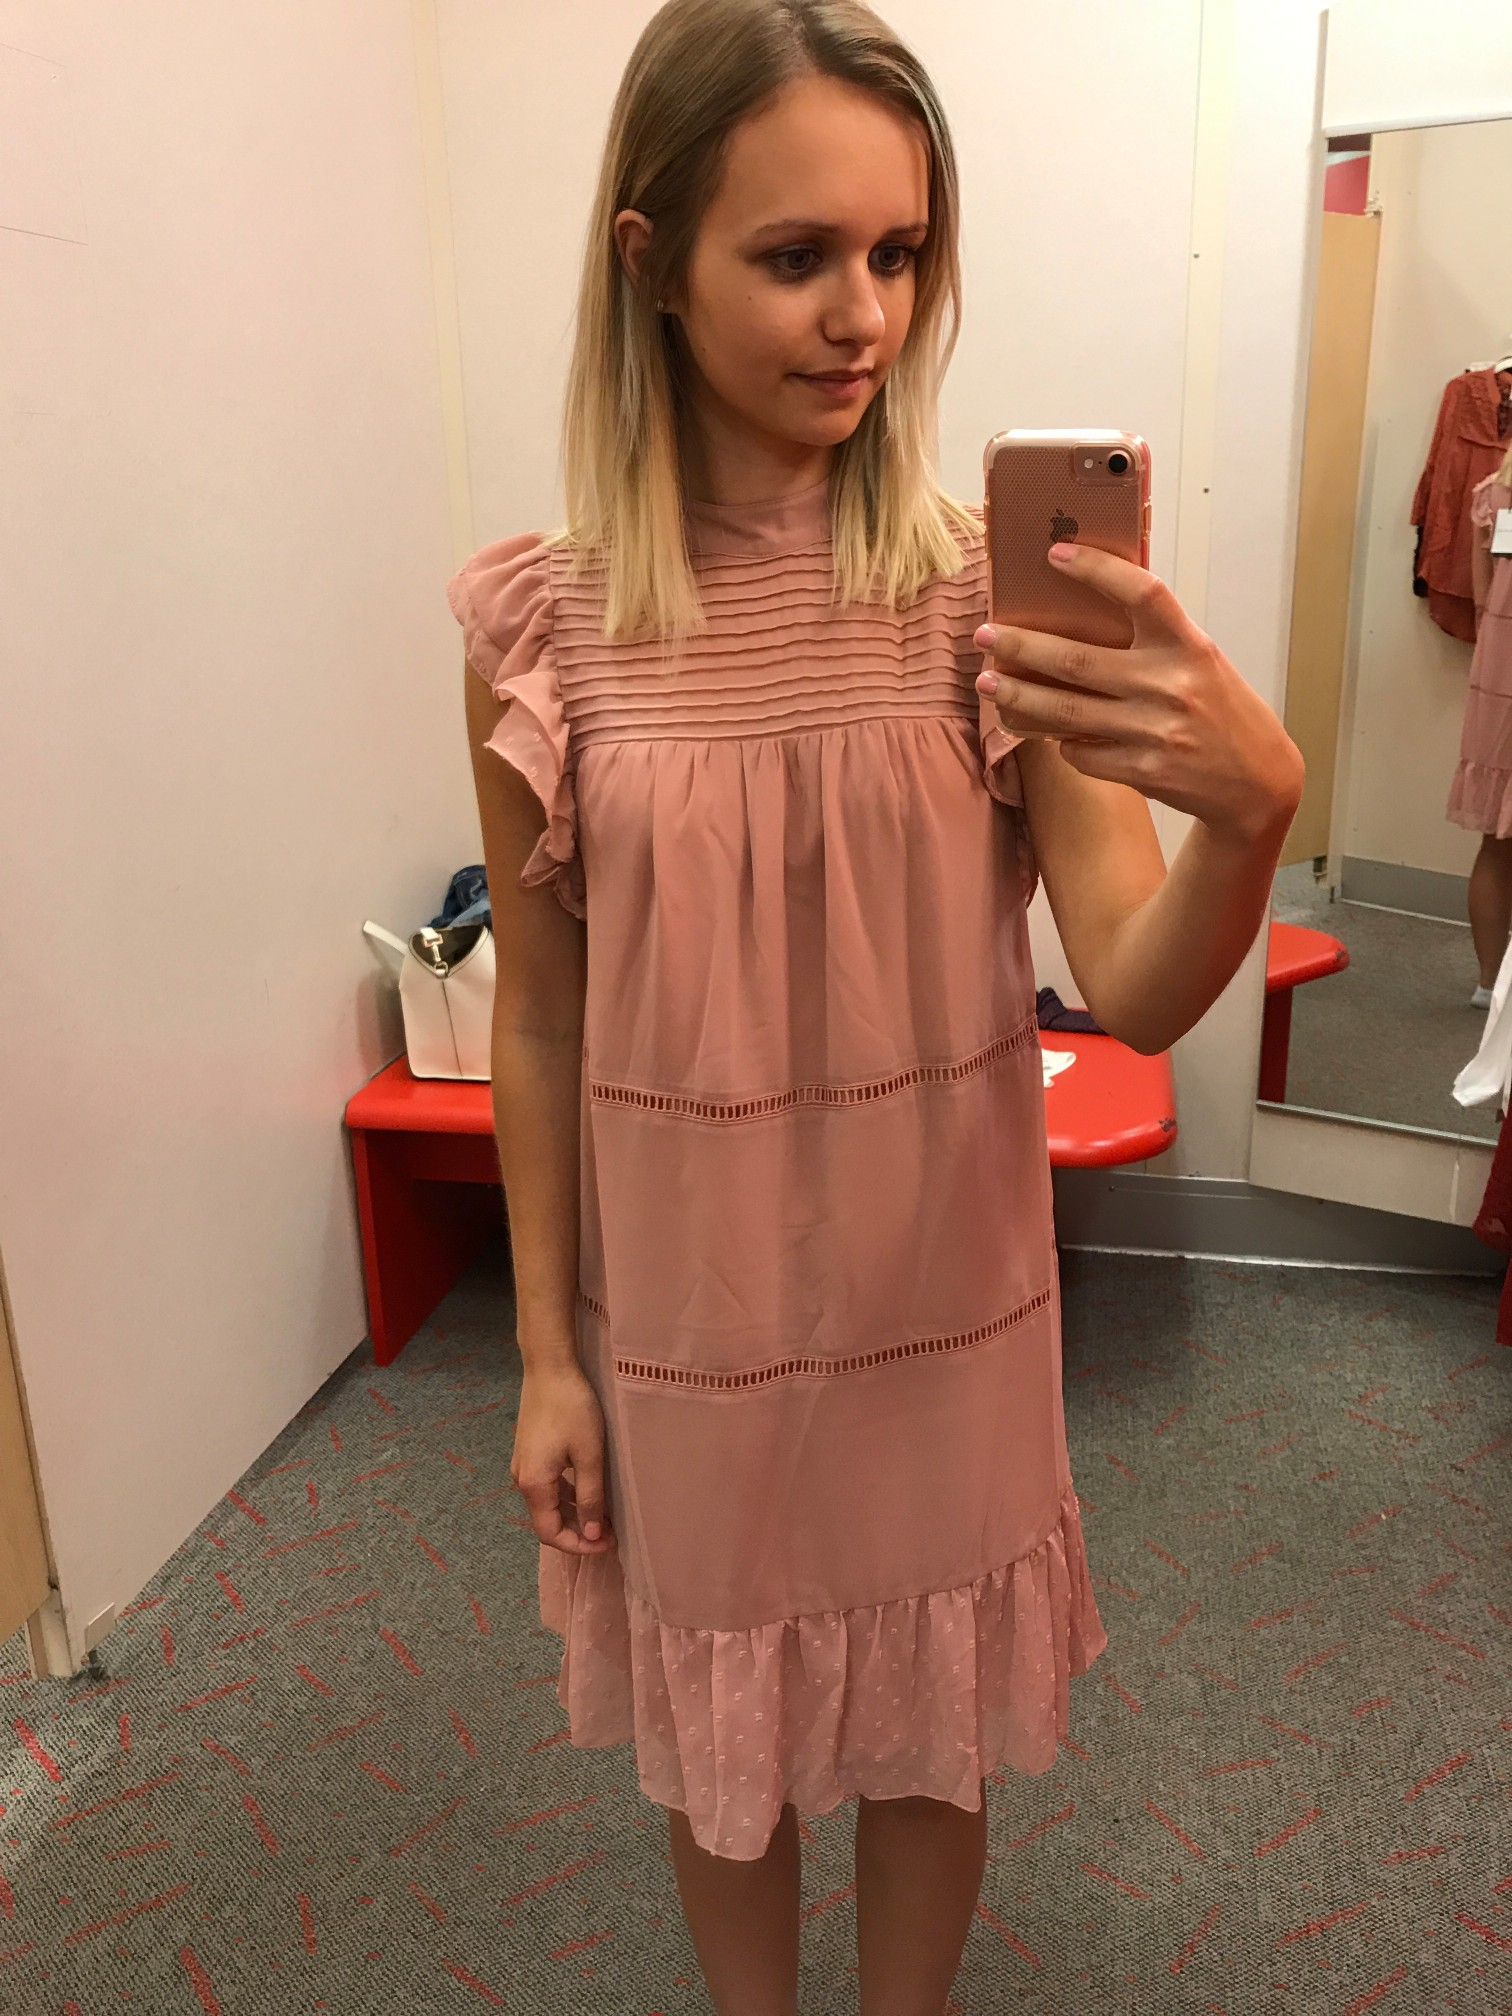 Target Who What Wear Chiffon Mini Dress fitting room adventures little things olga connecticut style blog